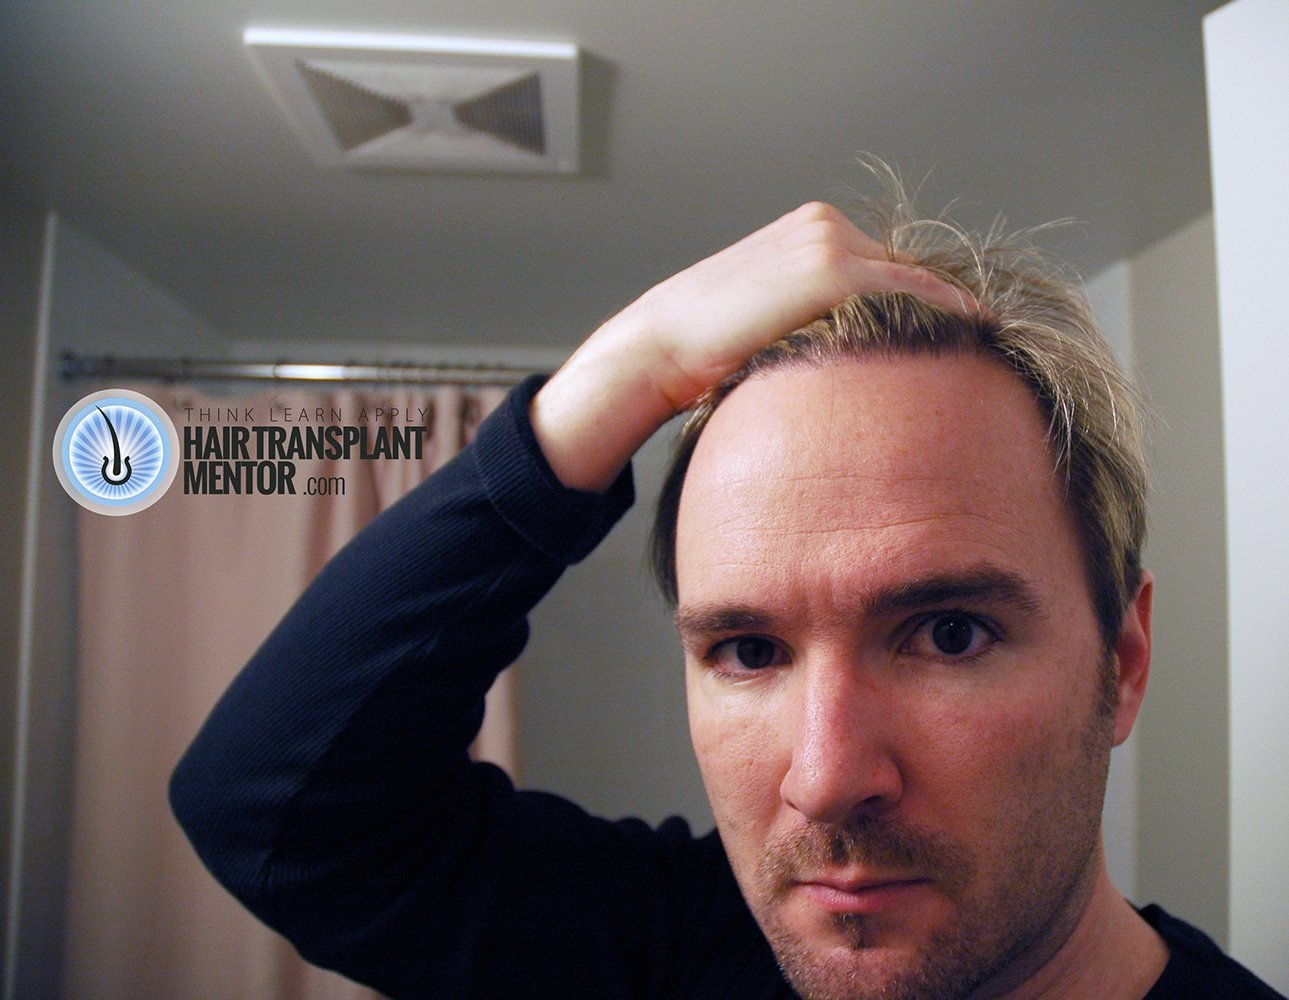 Want To See An Amazing Hair Transplant Result